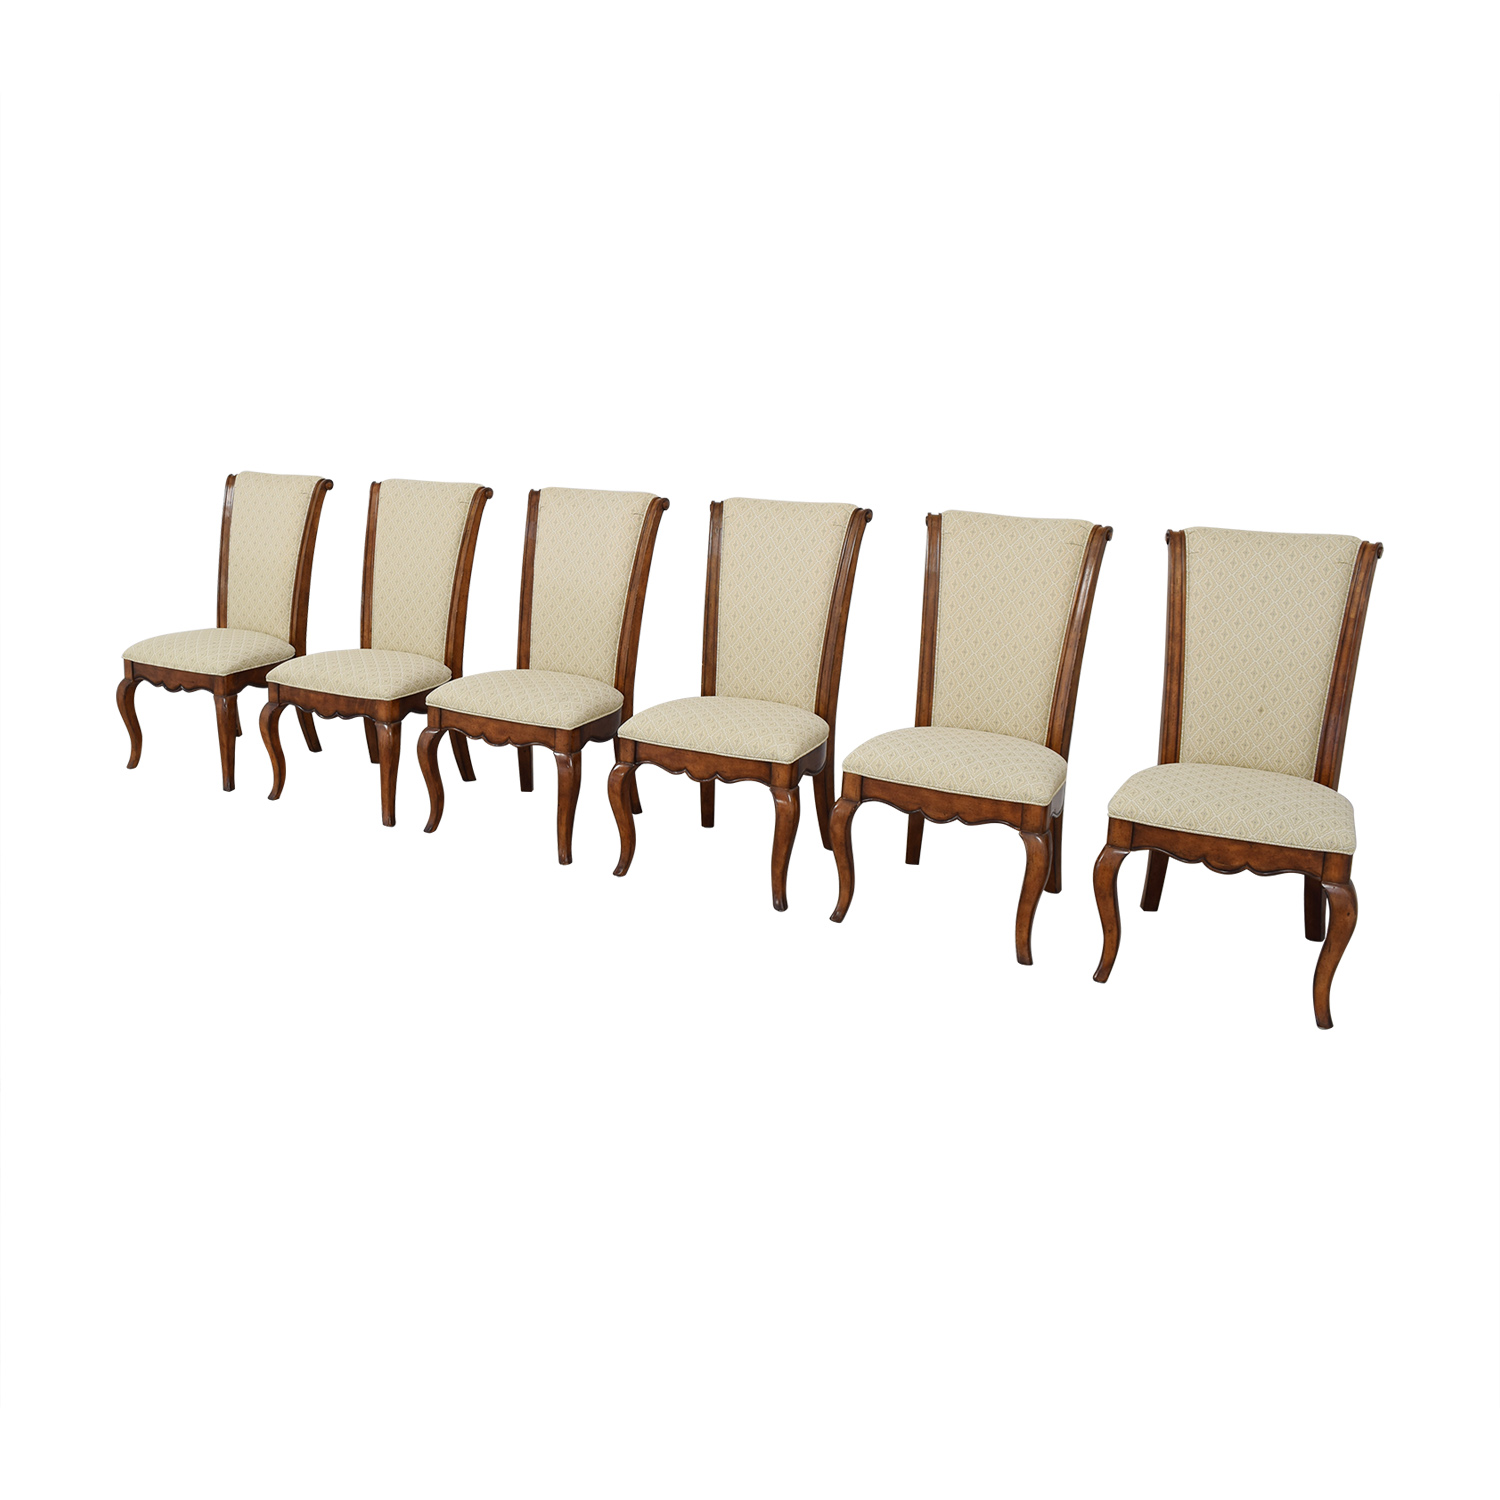 shop Drexel Heritage Extendable Dining Chairs Drexel Heritage Chairs